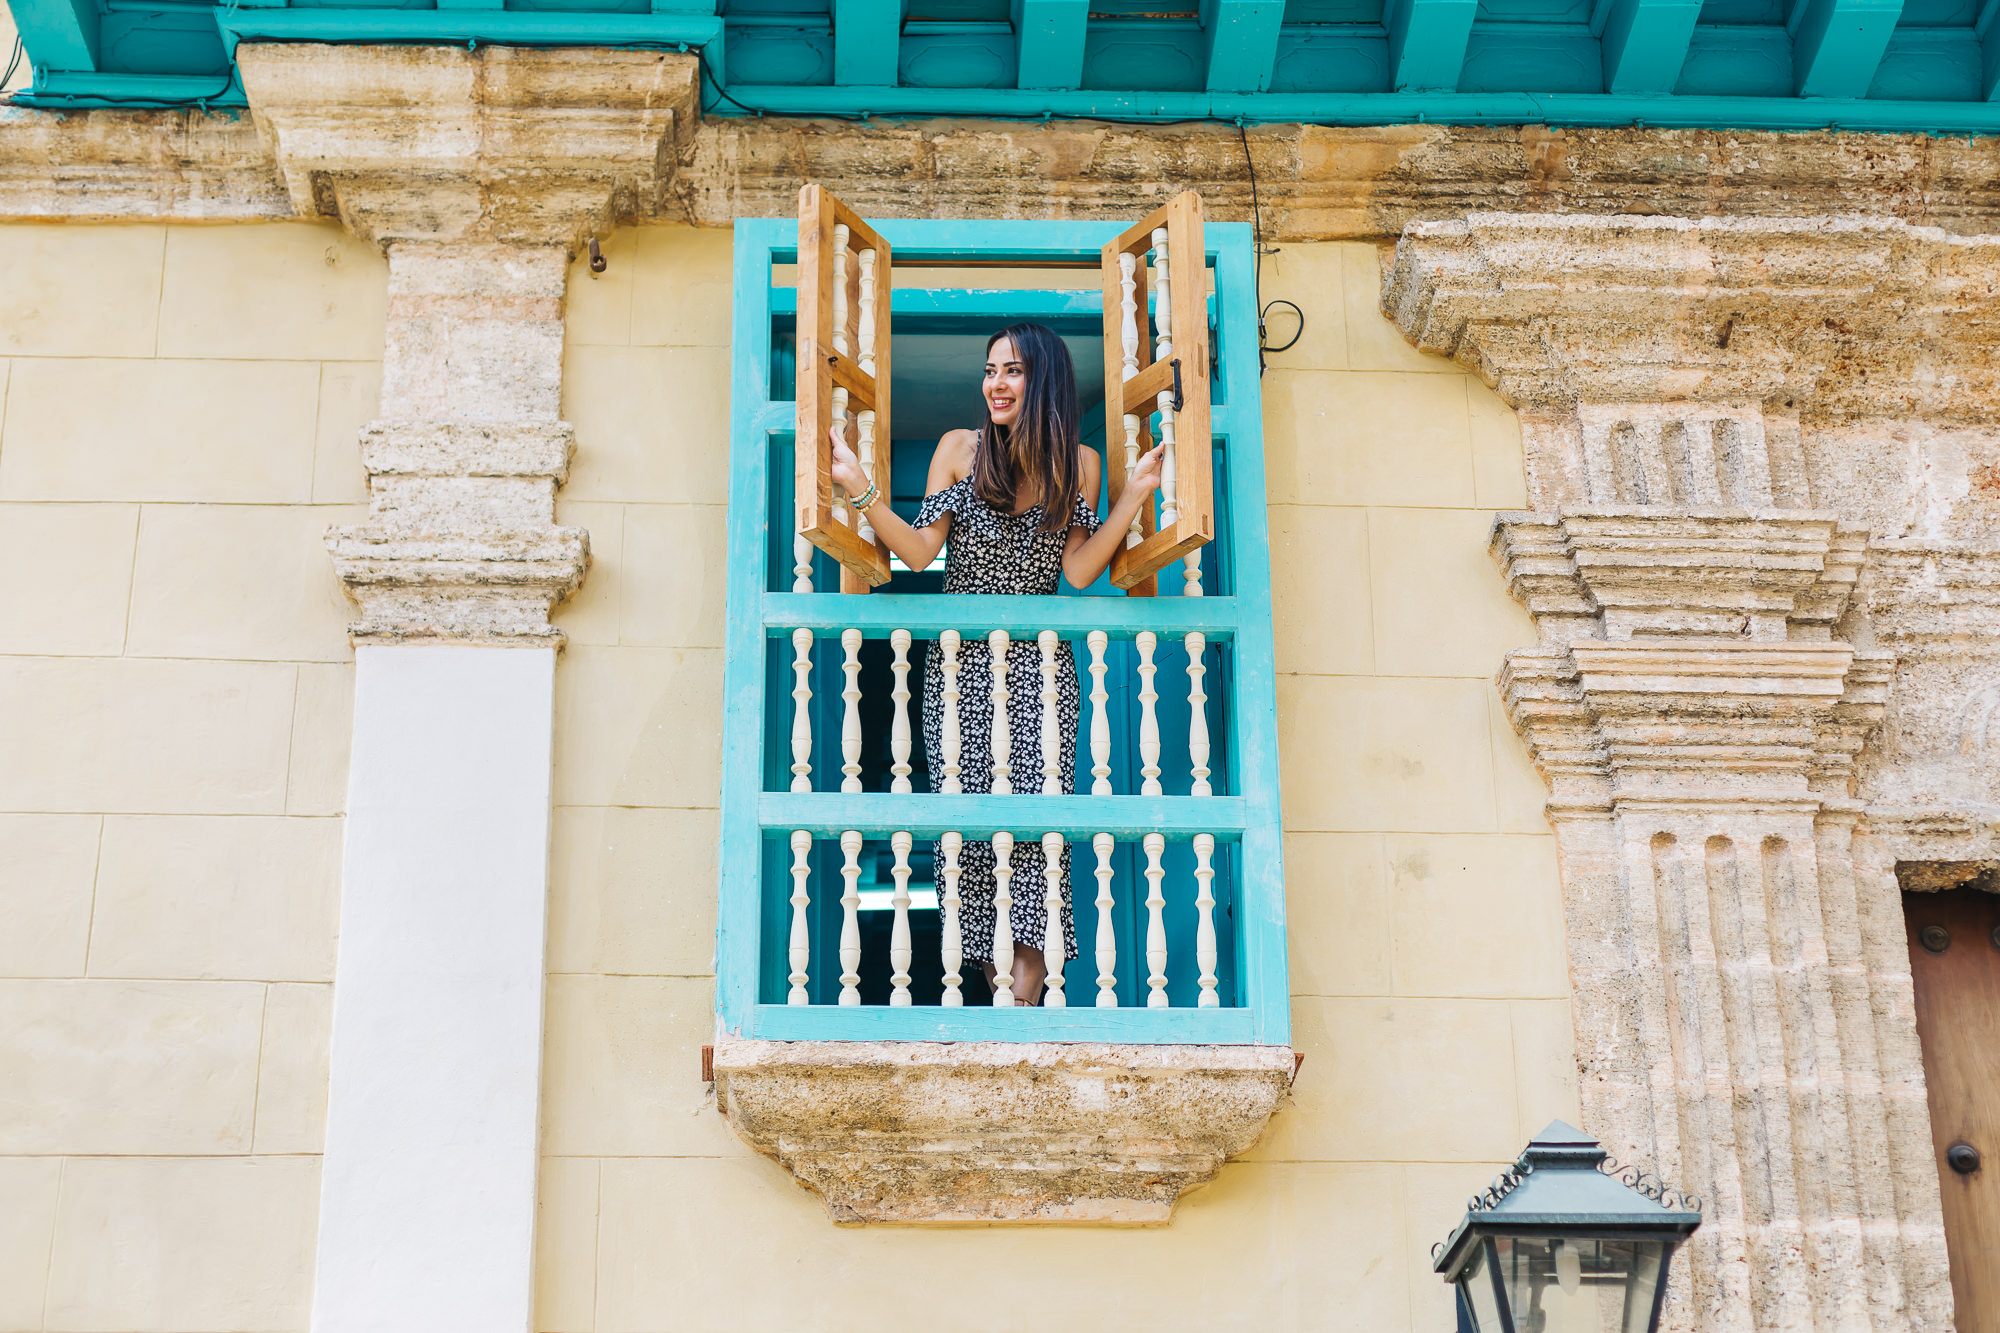 We loved our Airbnb location in Old Havana